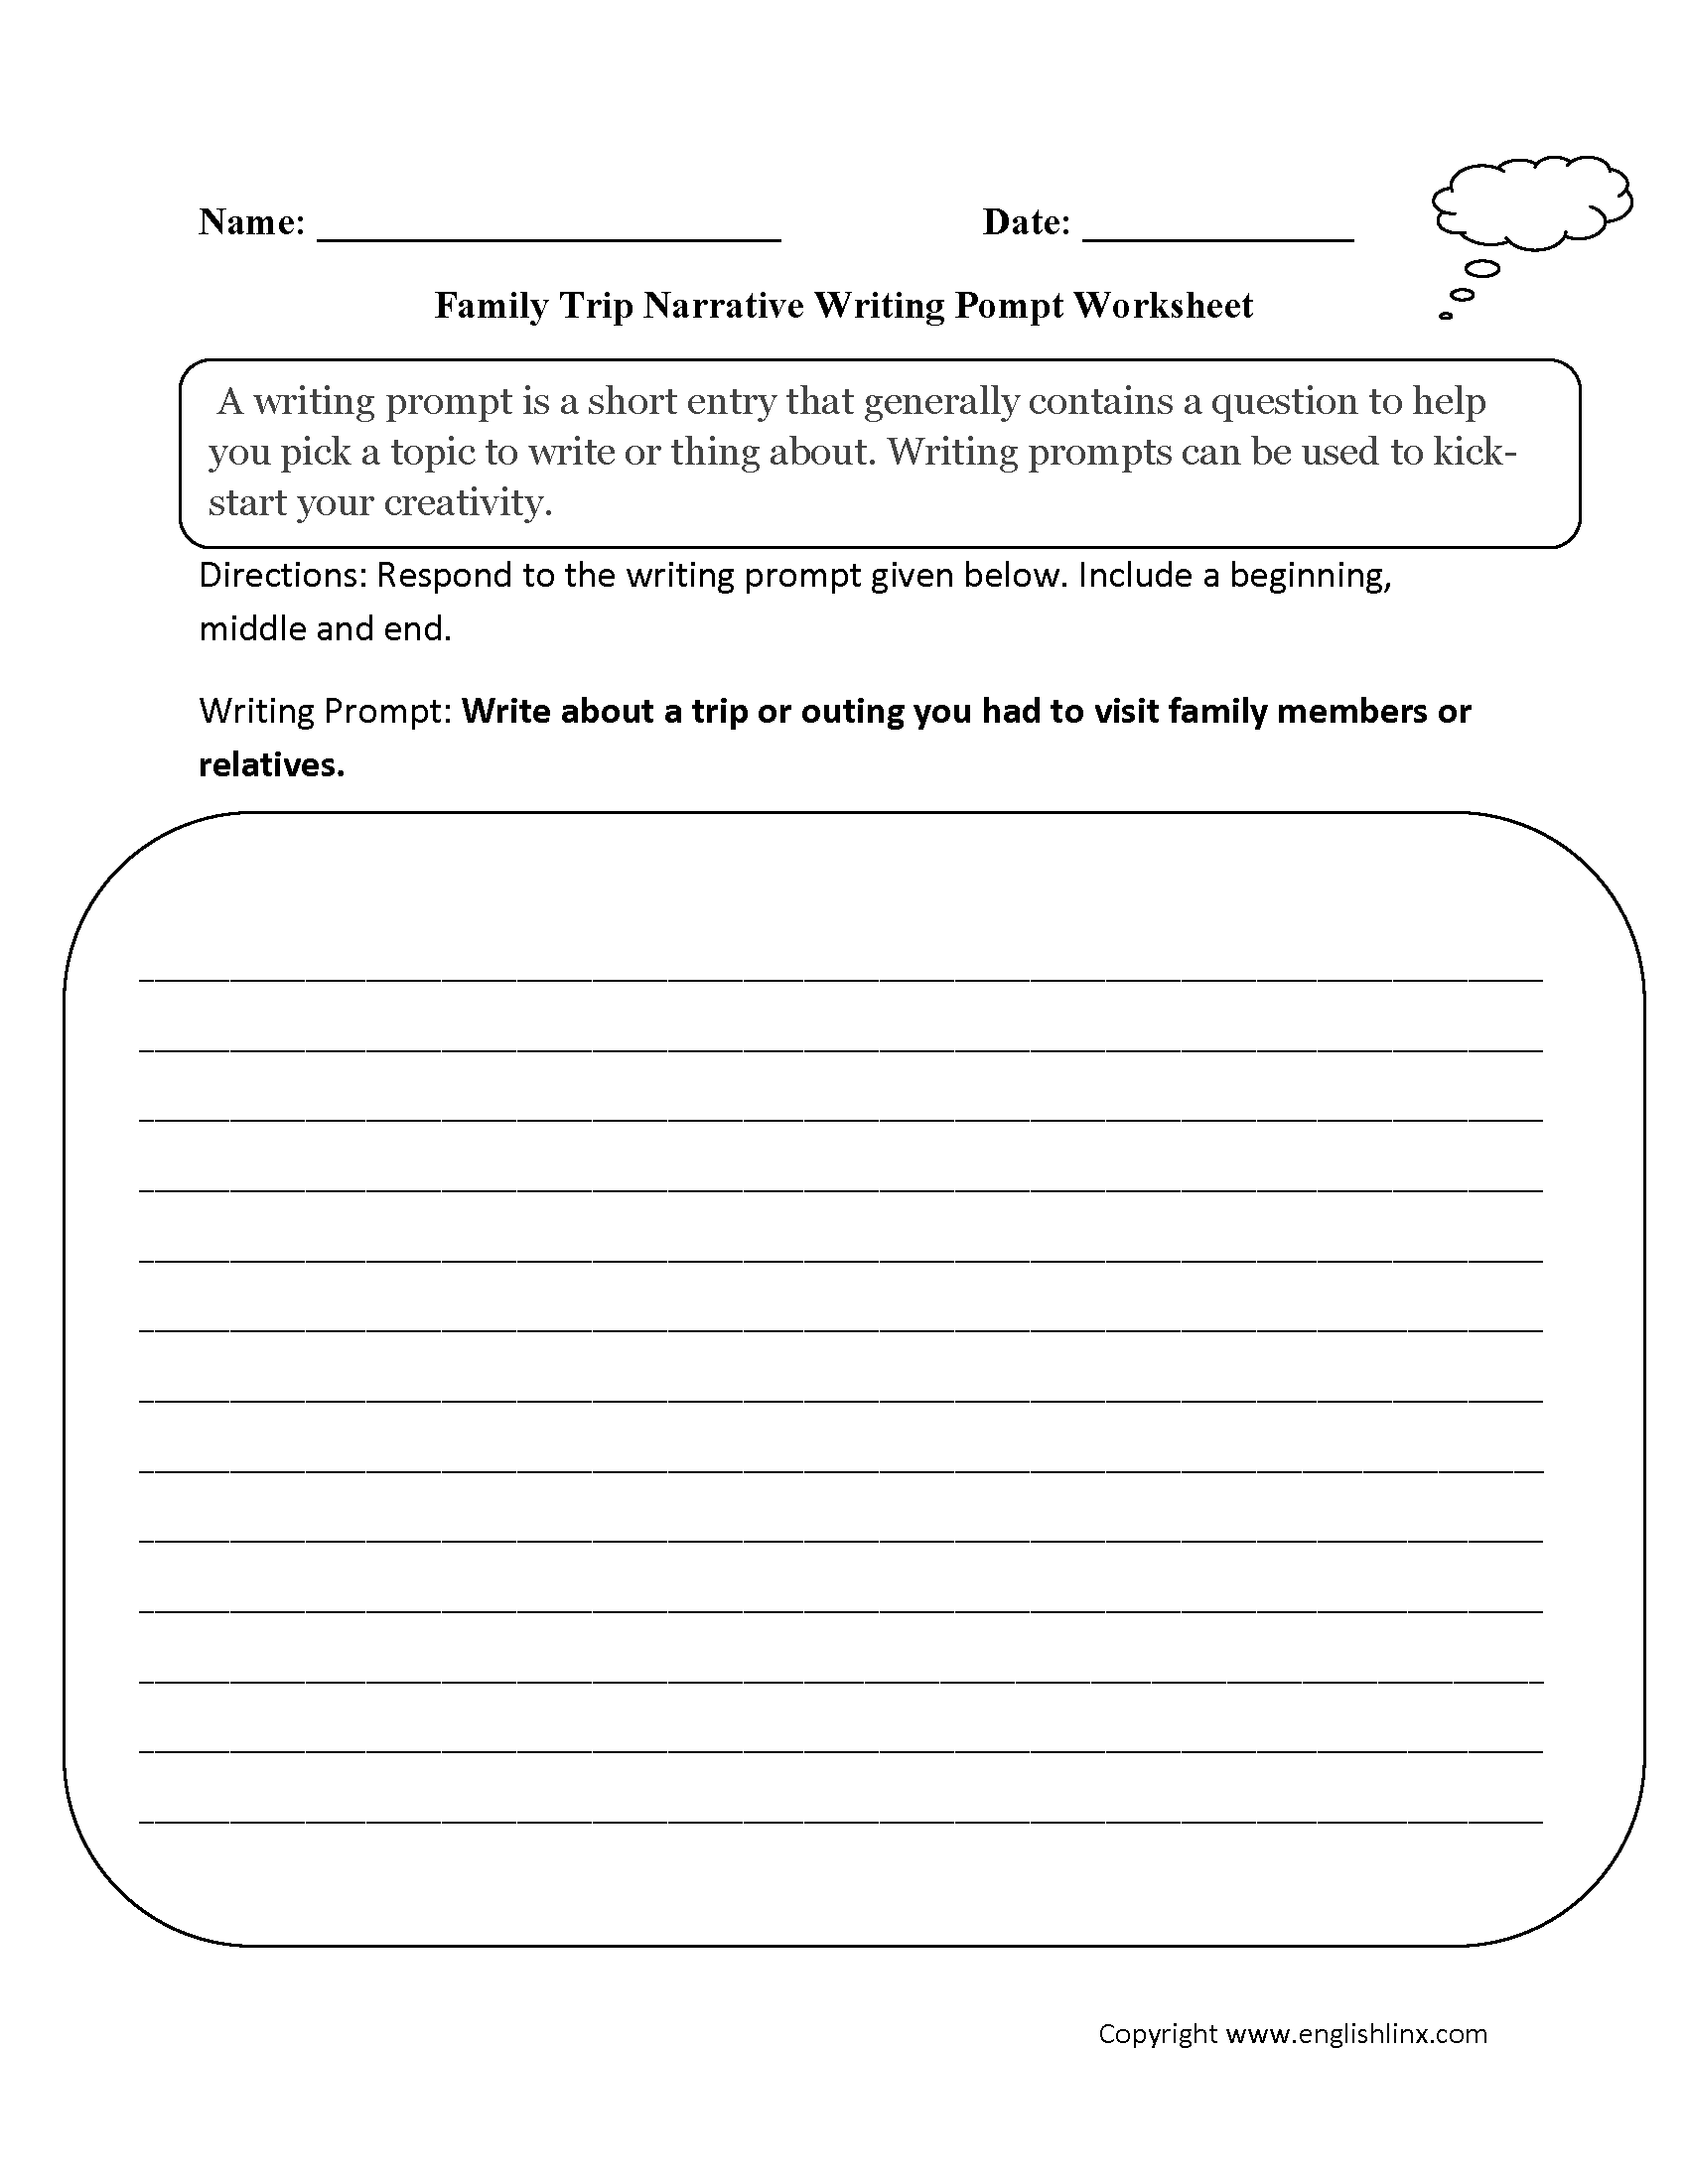 Printables 2nd Grade Writing Prompts Worksheets englishlinx com writing prompts worksheets worksheets